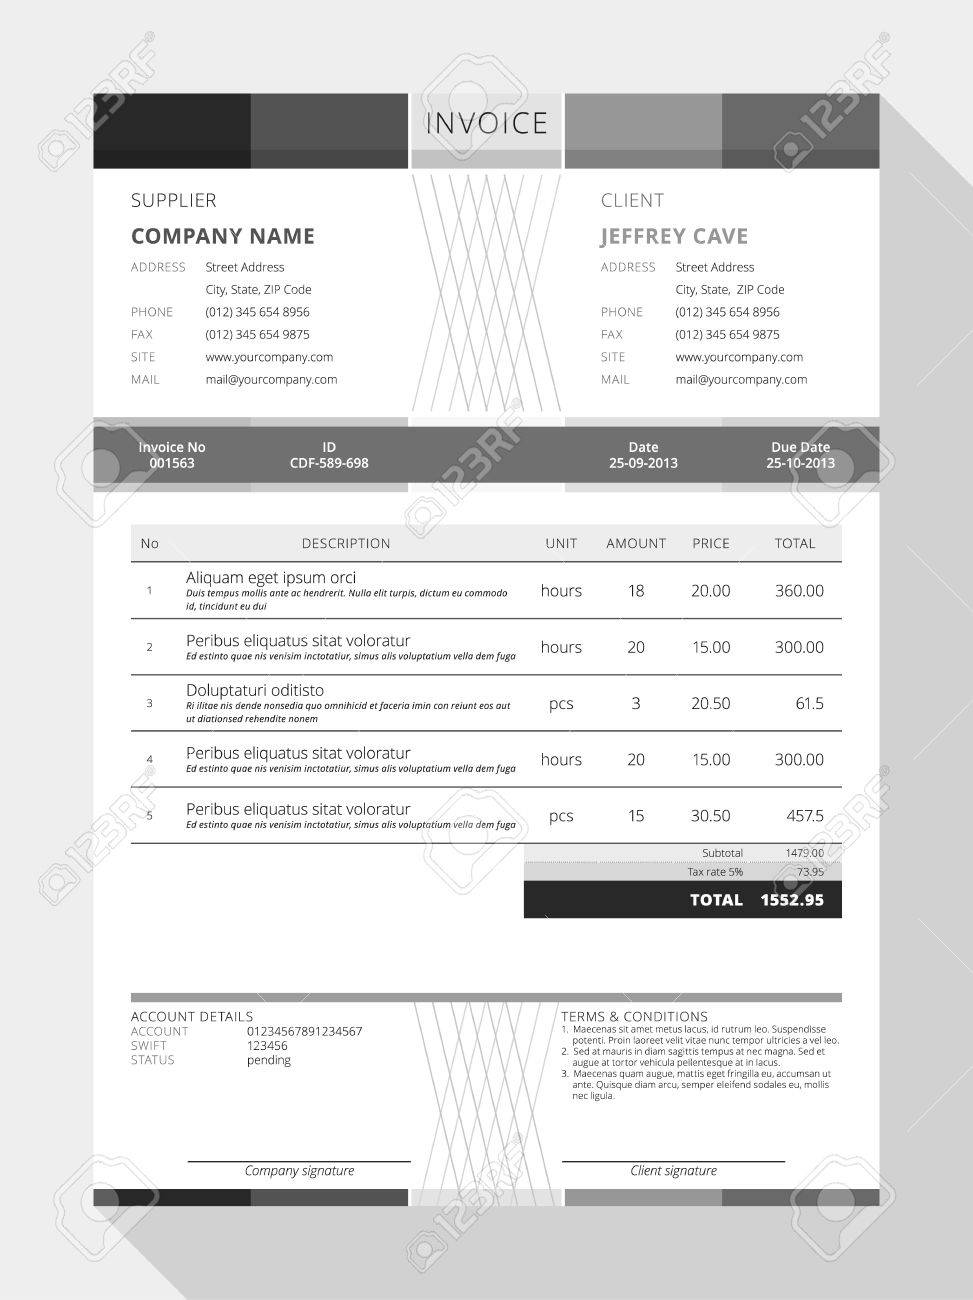 Hucareus  Picturesque Design An Invoice  Professional Graphic Design Invoice  With Outstanding Vector Customizable Invoice Form Template Design Vector   Design An Invoice With Captivating Monthly Invoice Template Also Free Invoice Pdf In Addition Mechanic Invoice Template And Fillable Commercial Invoice As Well As Free Invoice Template Pdf Download Additionally Free Auto Repair Invoice Template From Happytomco With Hucareus  Outstanding Design An Invoice  Professional Graphic Design Invoice  With Captivating Vector Customizable Invoice Form Template Design Vector   Design An Invoice And Picturesque Monthly Invoice Template Also Free Invoice Pdf In Addition Mechanic Invoice Template From Happytomco